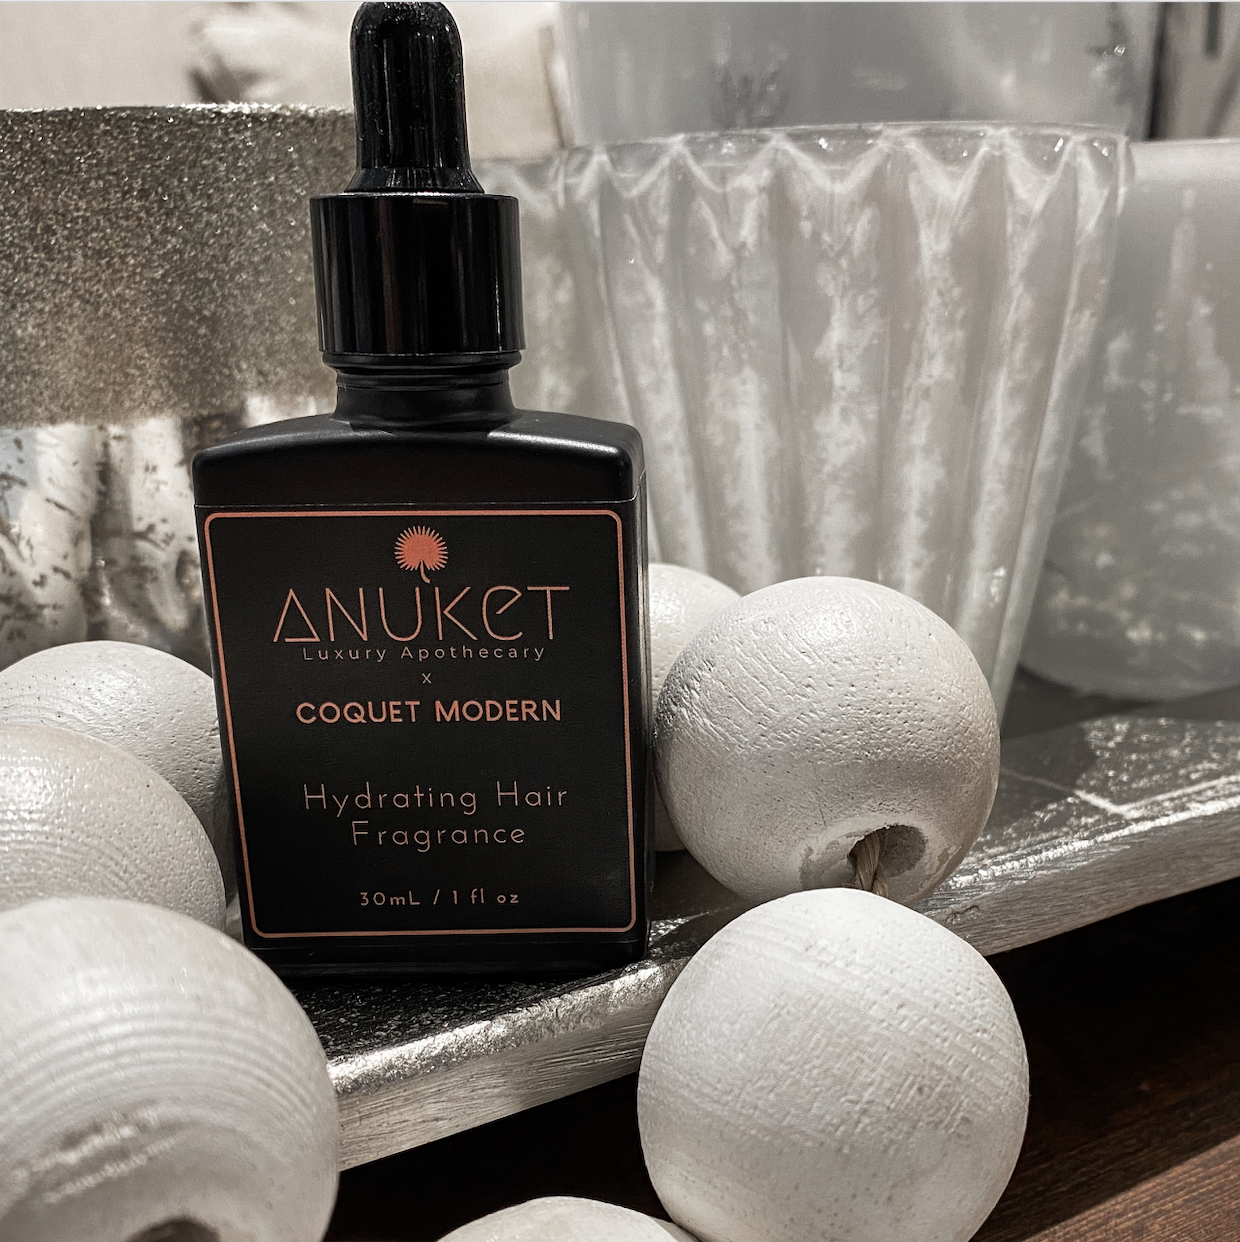 Anuket x Coquet Modern Hydrating Hair Fragrance black bottle sitting next to white blessing beads and silver candle holders